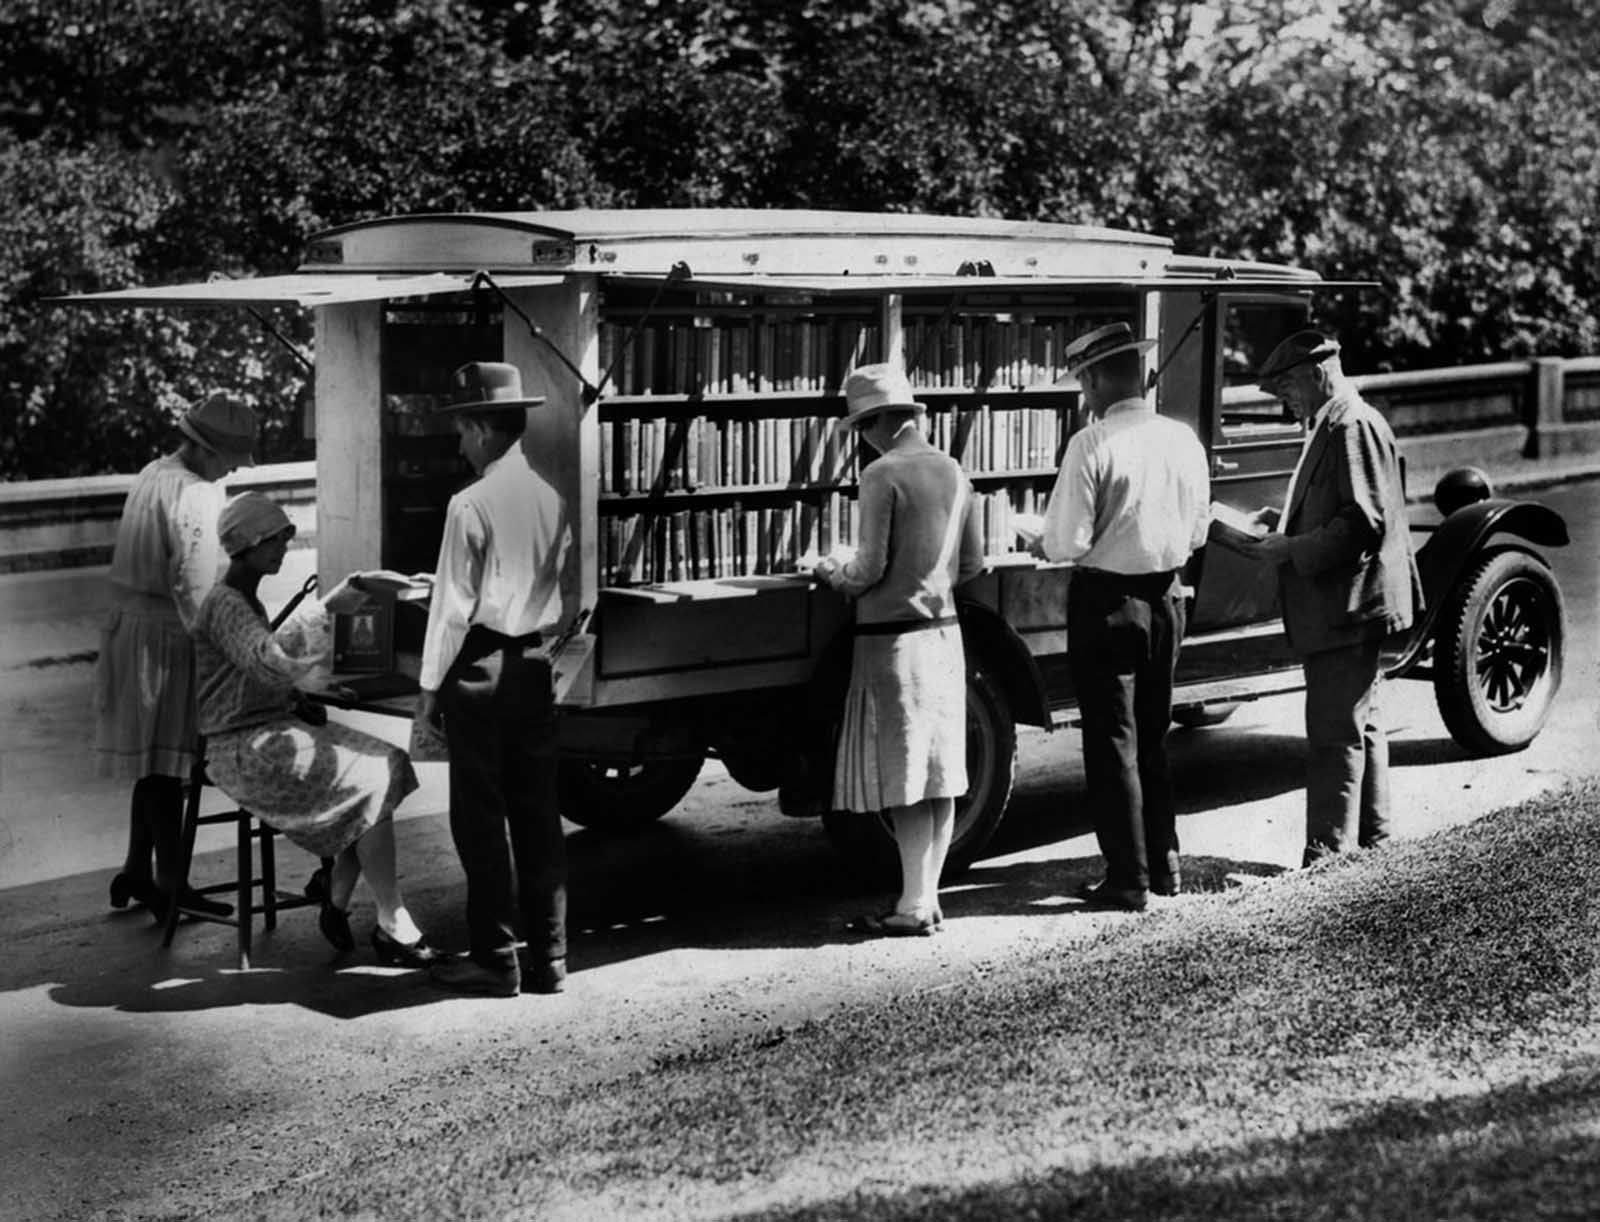 The Public library of Cincinnati's first bookmobile, circa 1927.